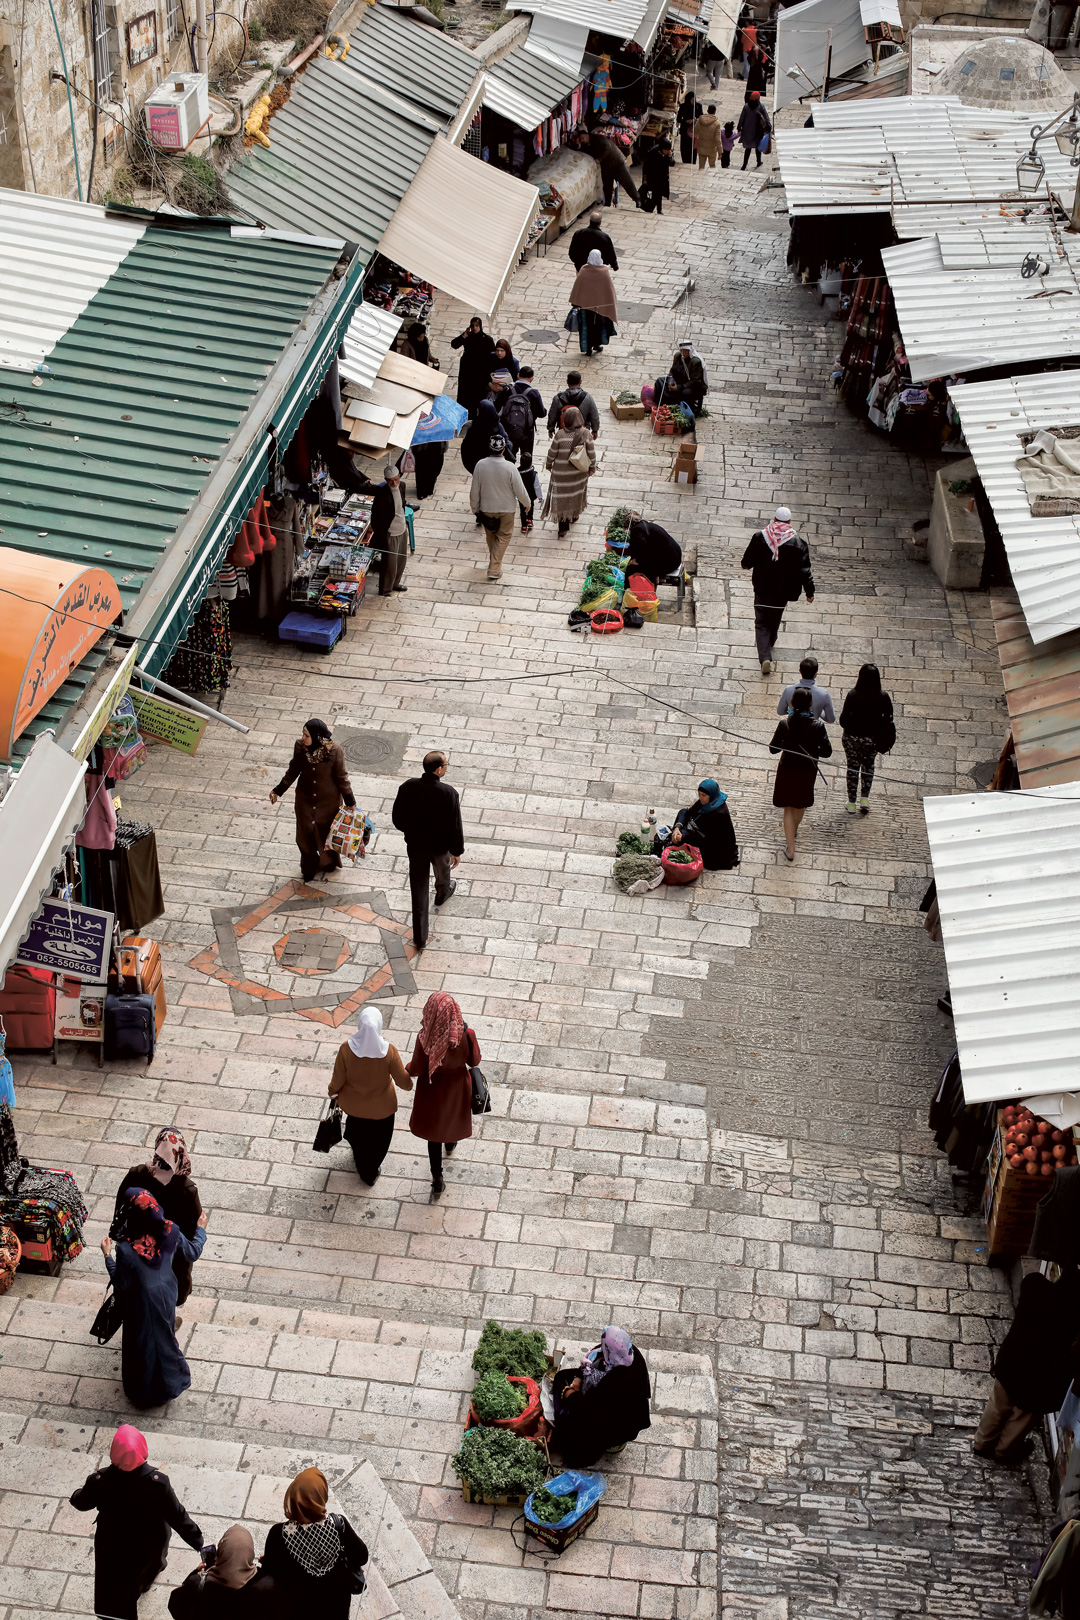 Stairs leading down from Damascus Gate into the Old City of Jeruslam. Photo by Dan Perez from The Palestinian Table